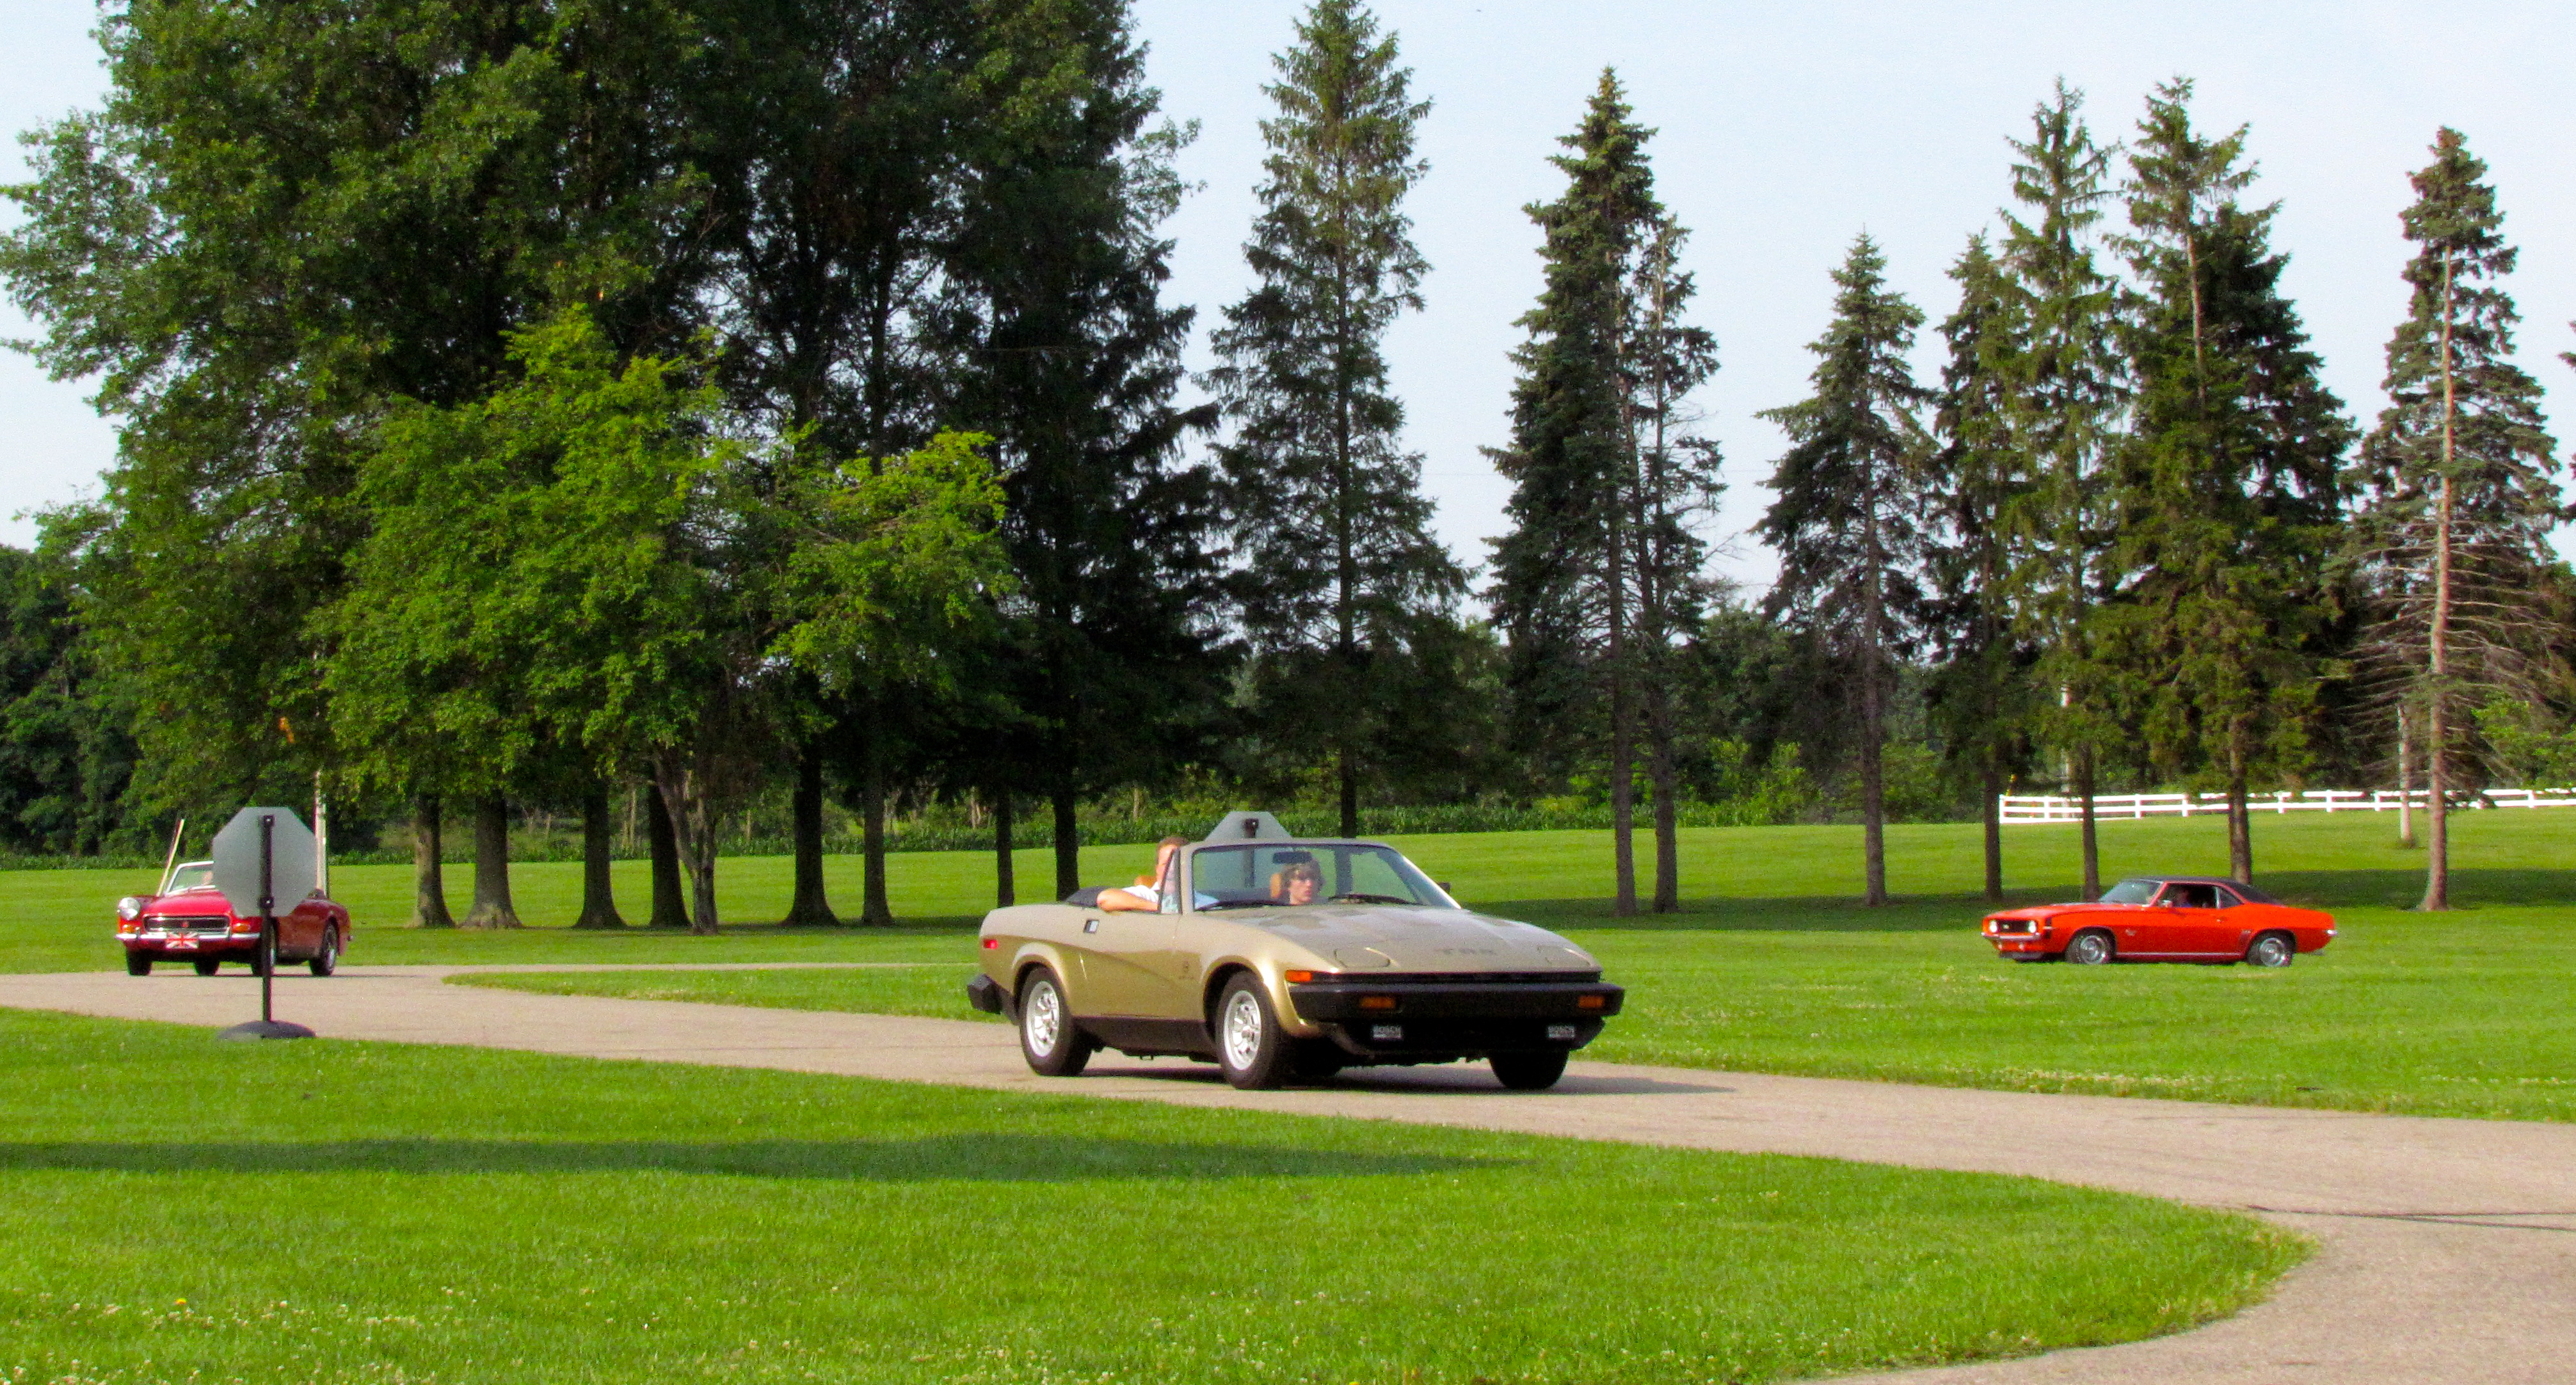 shift, Shift work: Hagerty needs help training 500 drivers in 50 days, ClassicCars.com Journal